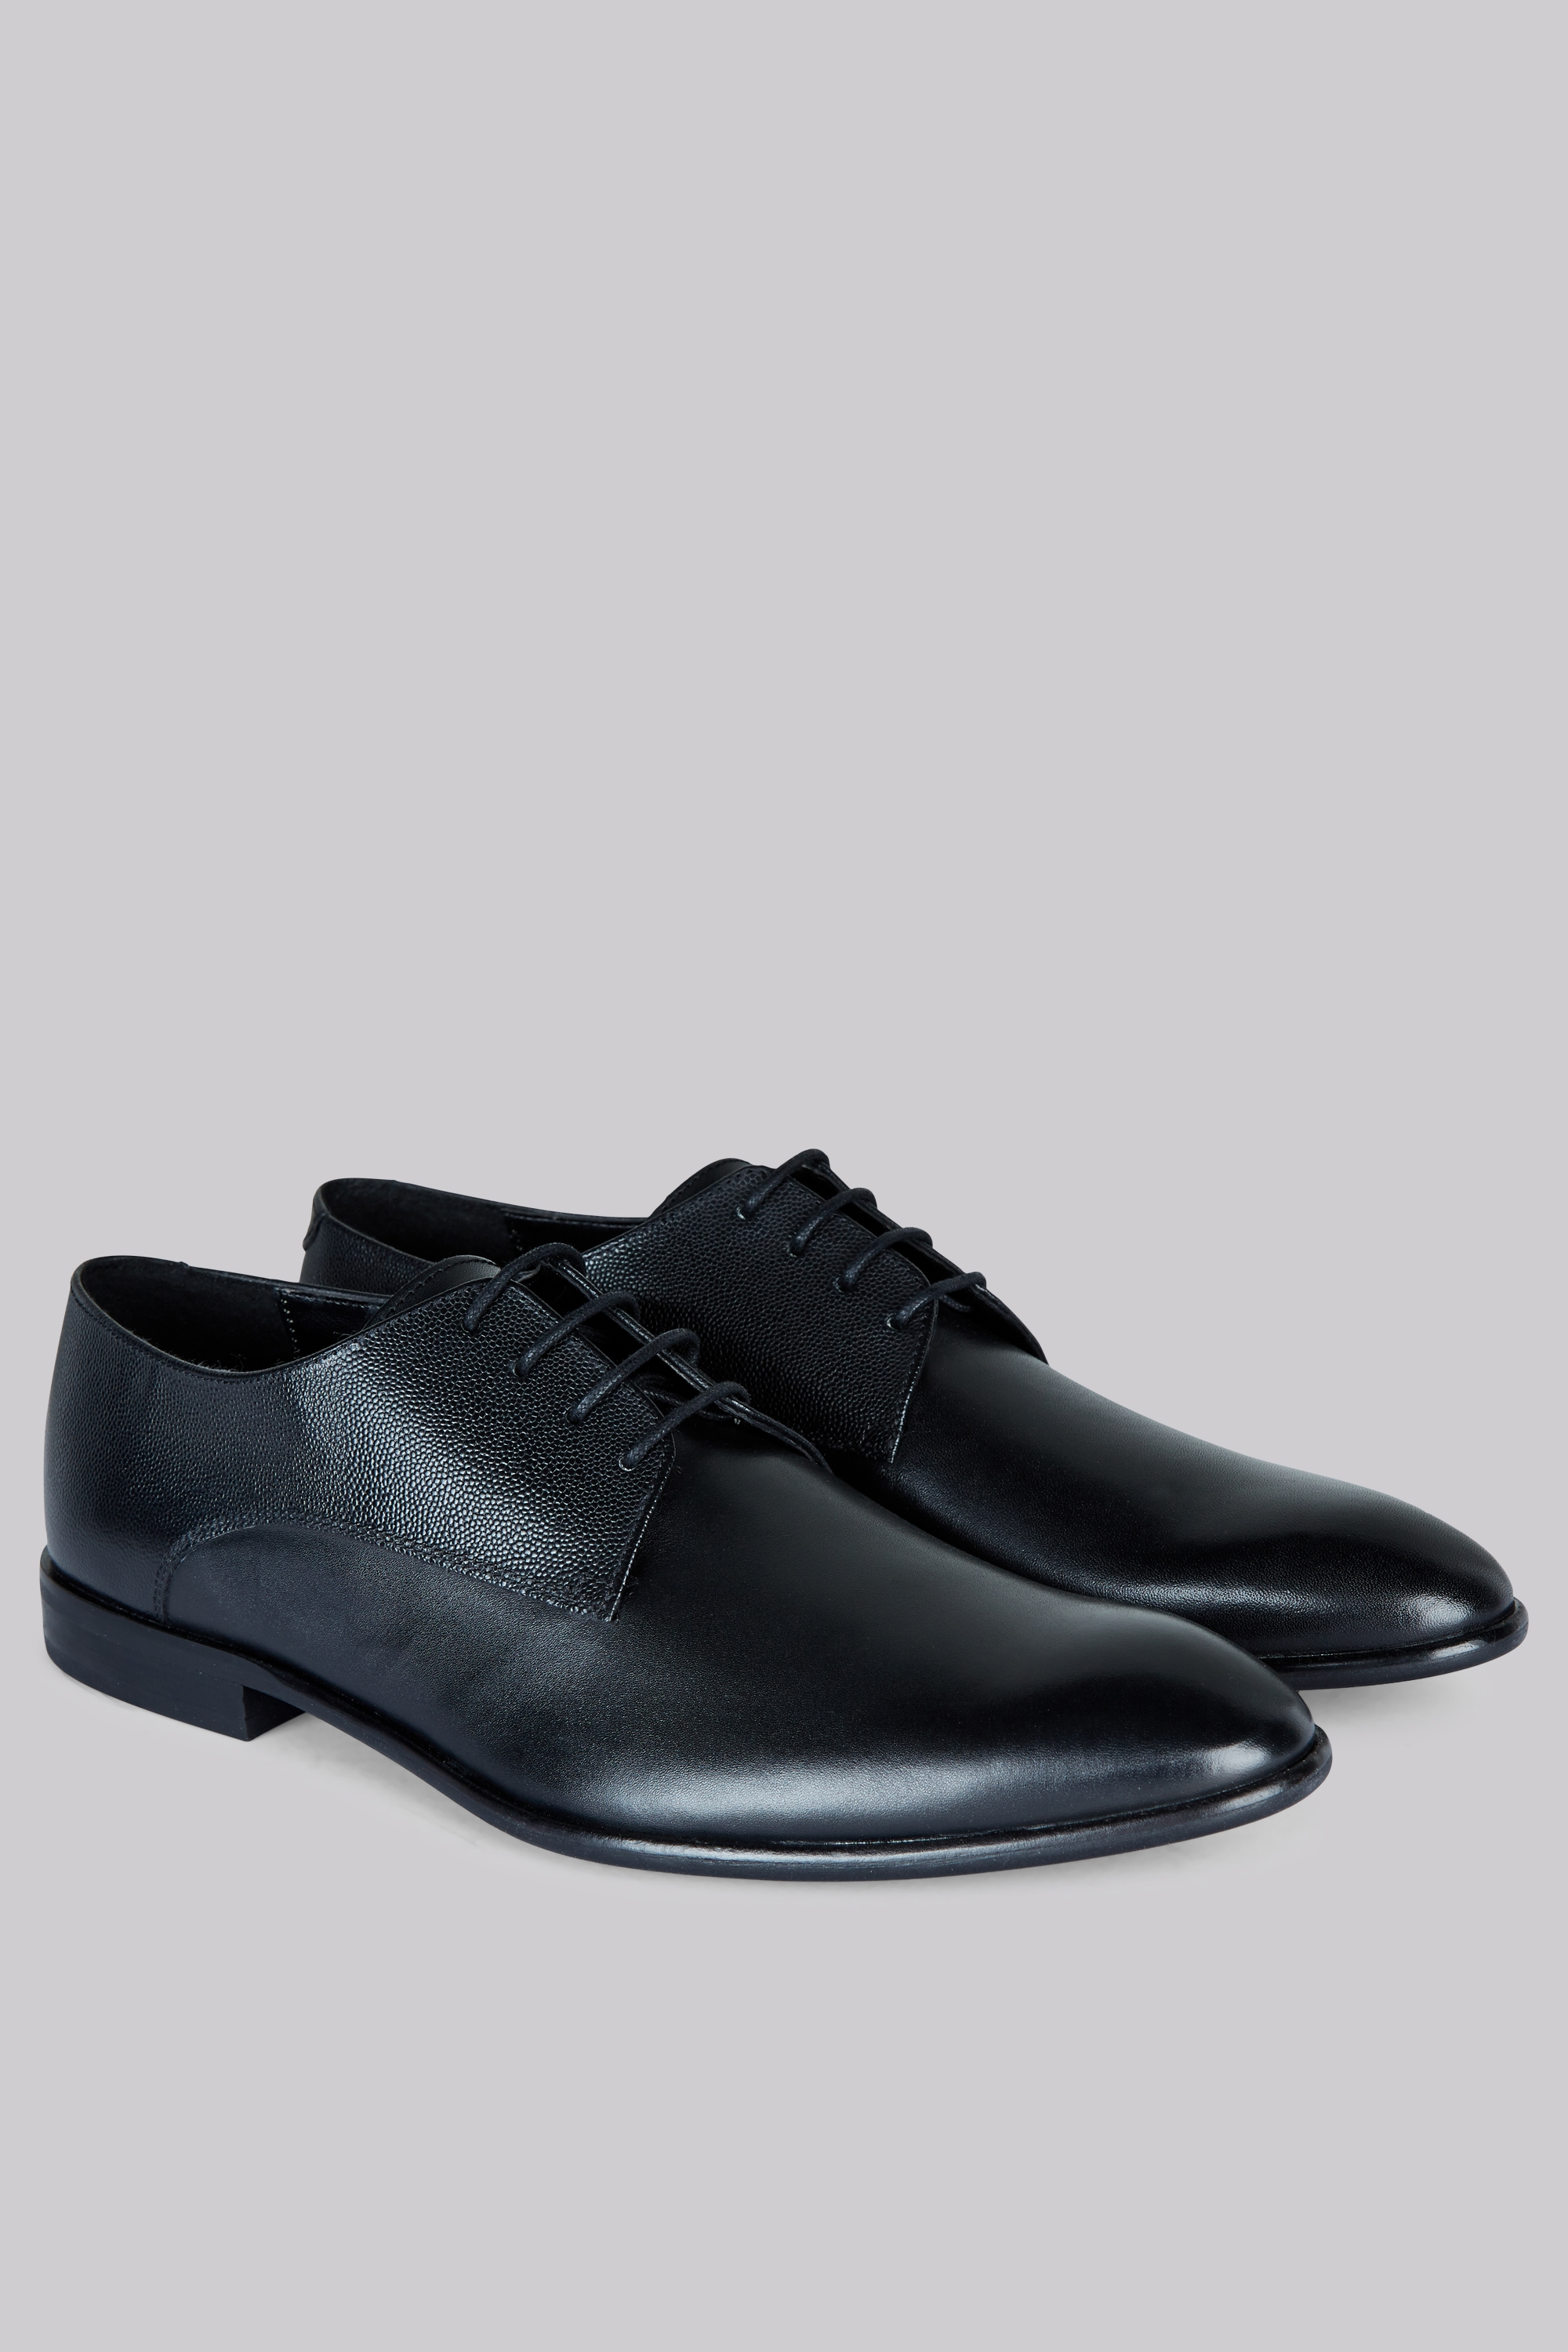 Moss Bros Moss London Grayes Black Textured Shoes